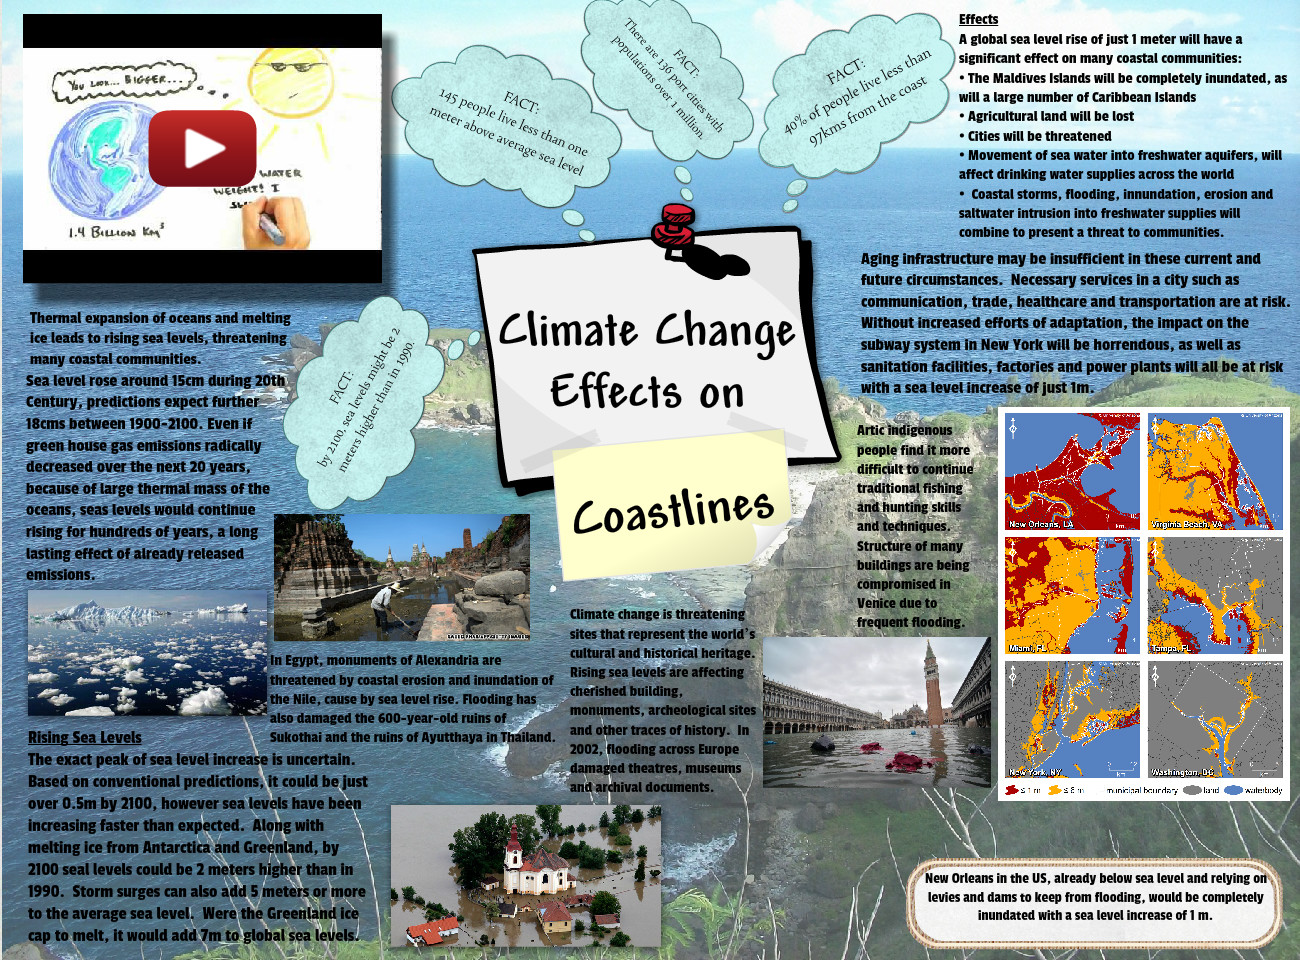 Climate Change Effects on Coastlines